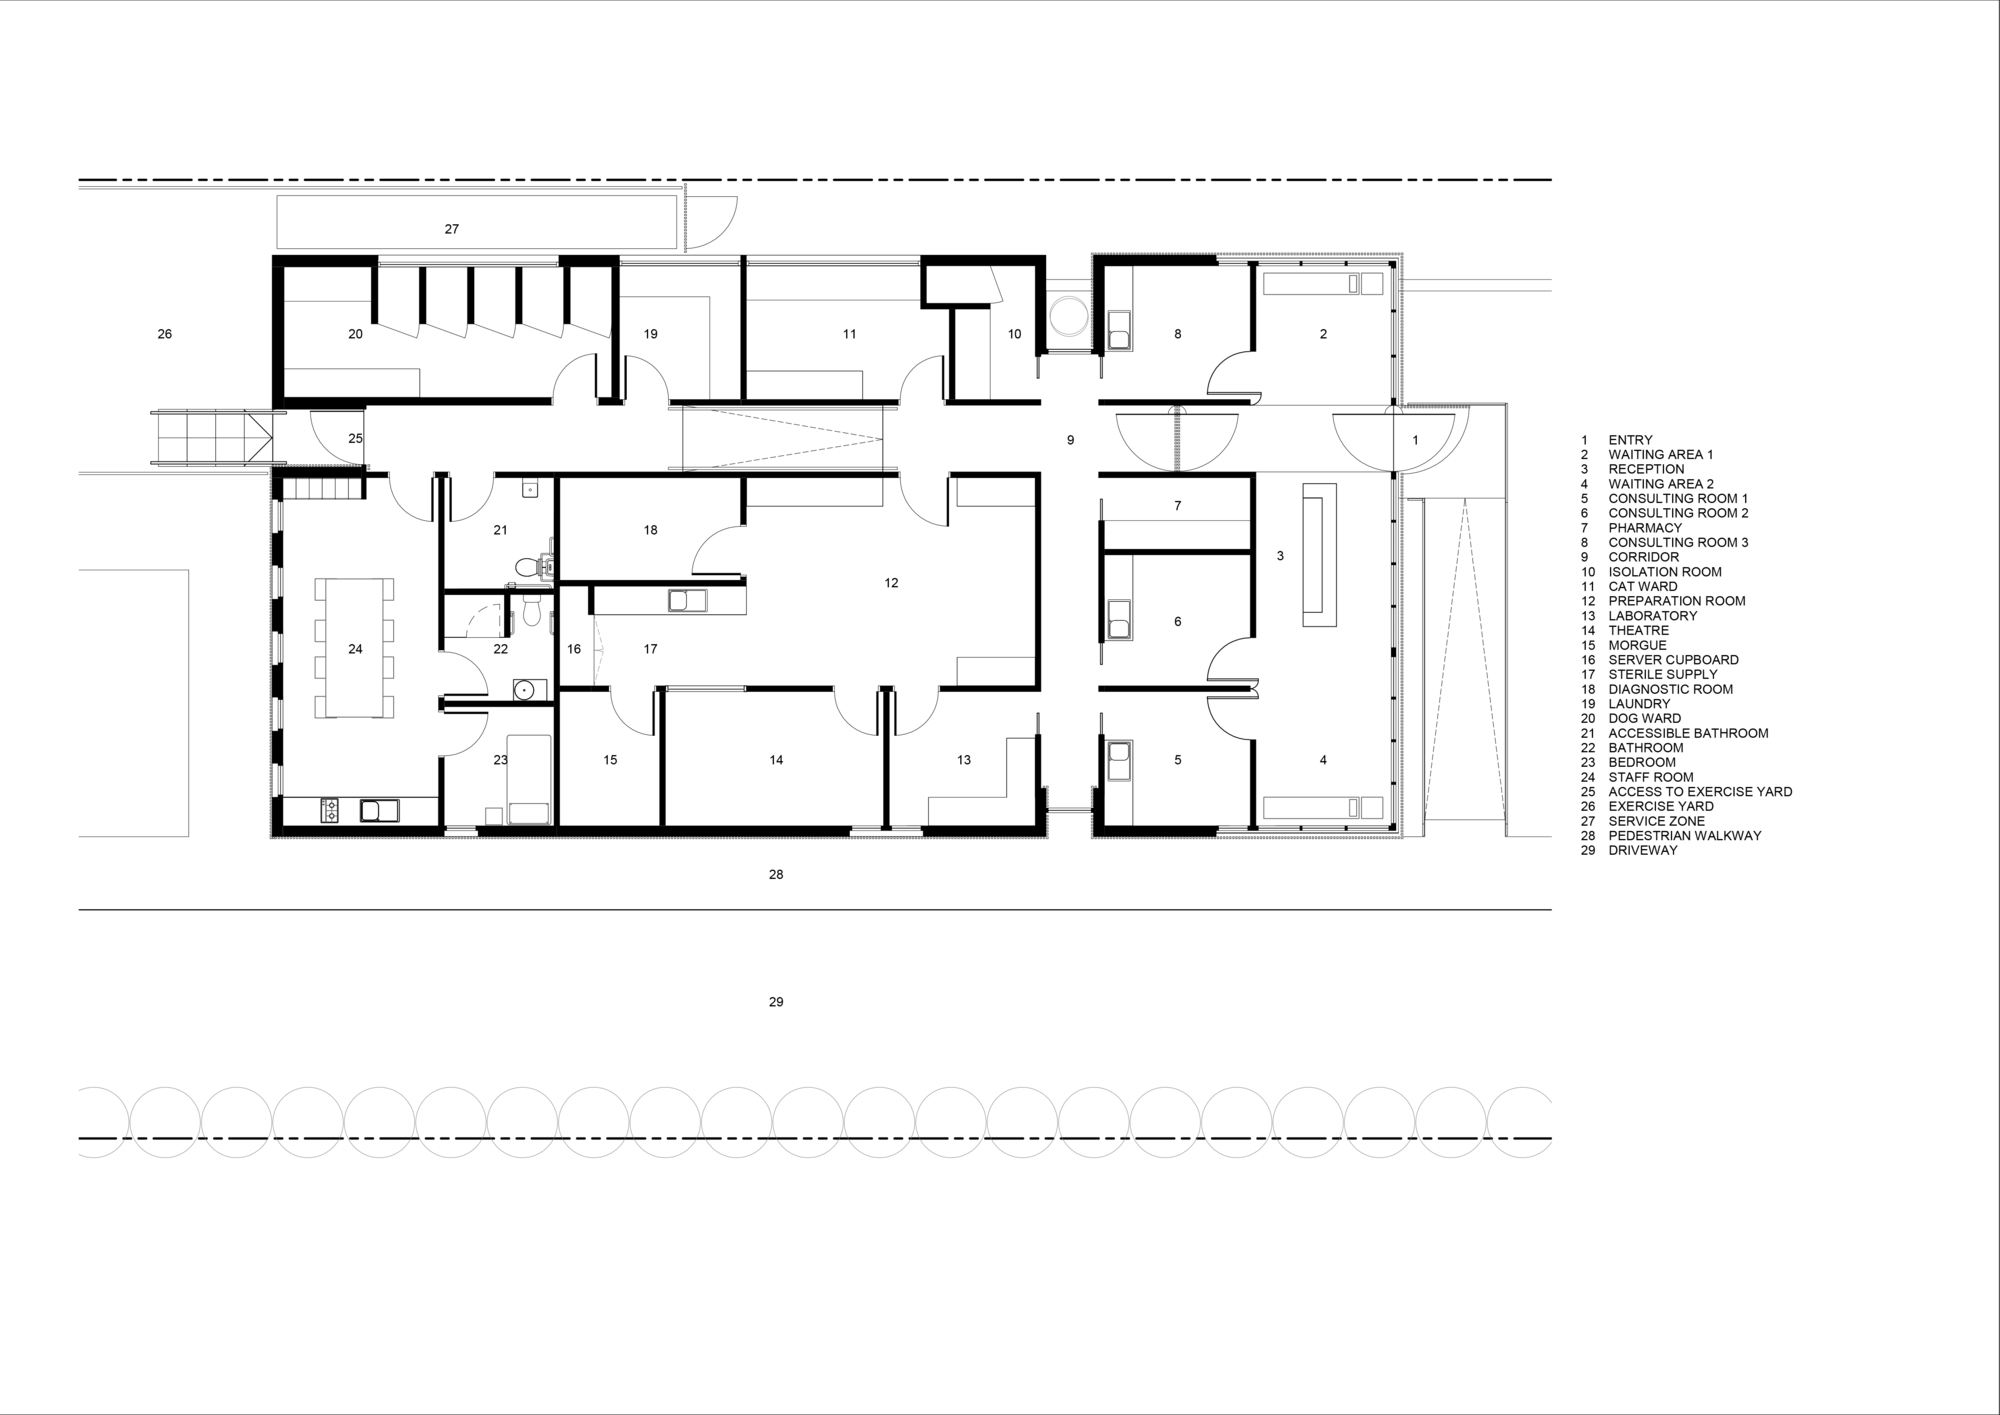 520d4ea6e8e44e4bf9000096 Ridge House Grid Architects Plan in addition ConceptScoring besides Jmd tzg blaxland Playground Plan besides Thorncrown Chapel further 596ee328b22e3854ce00008d Wallan Veterinary Hospital Crosshatch Floor Plan. on architecture